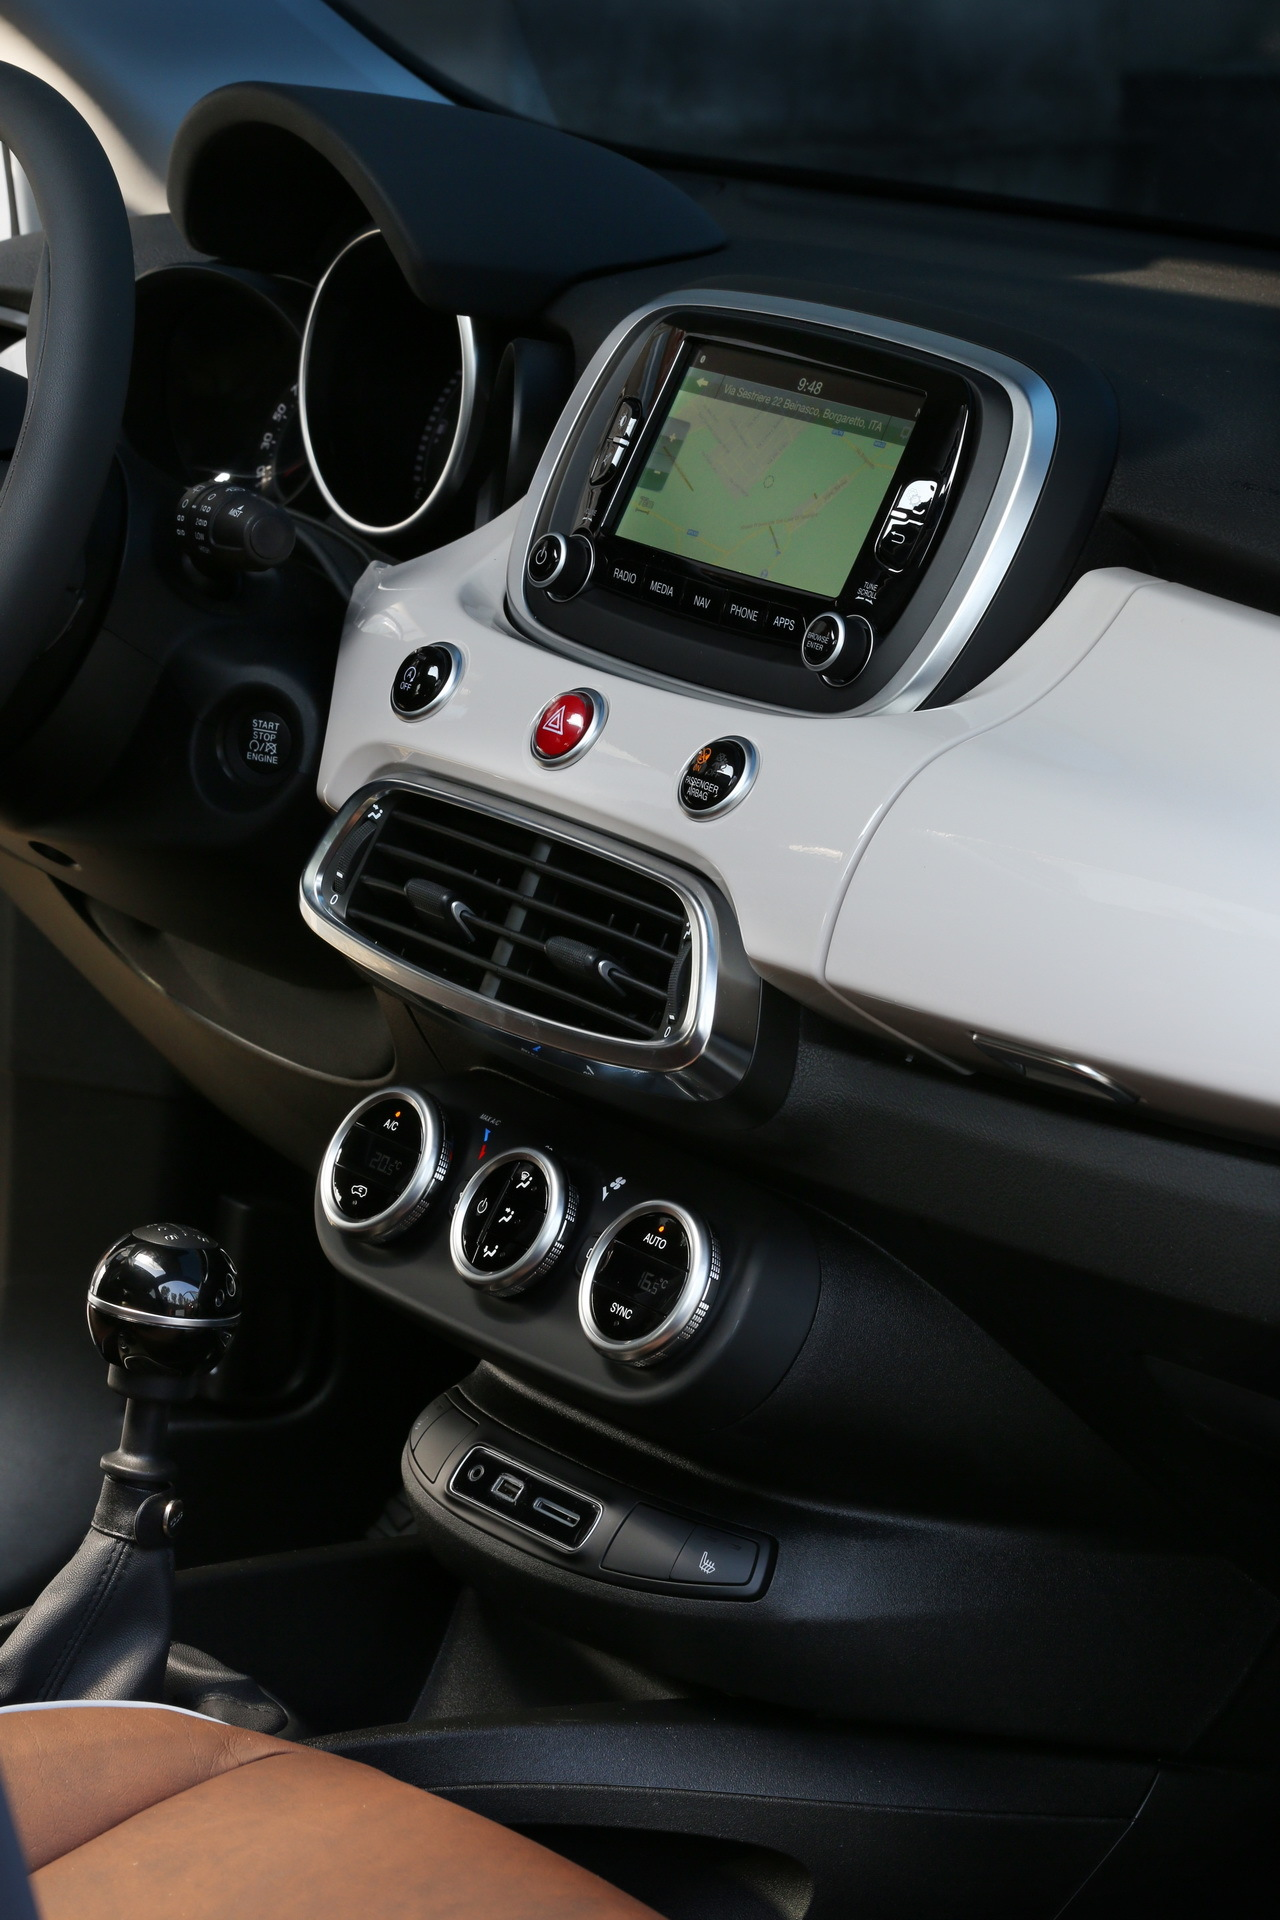 essai fiat 500x la fiat du renouveau 2014 photo 39 l 39 argus. Black Bedroom Furniture Sets. Home Design Ideas